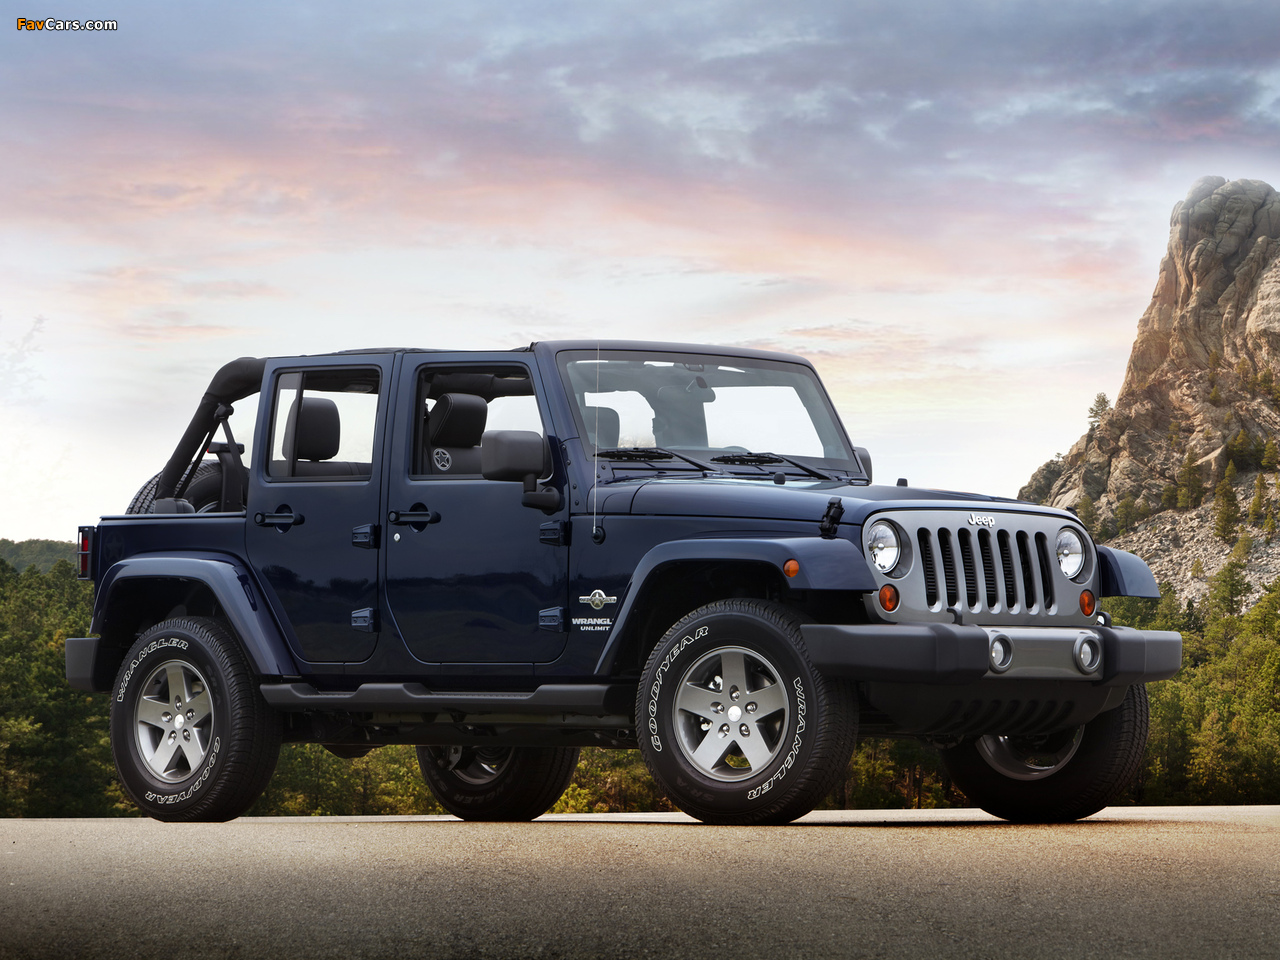 Jeep Wrangler Unlimited Freedom (JK) 2012 pictures (1280 x 960)